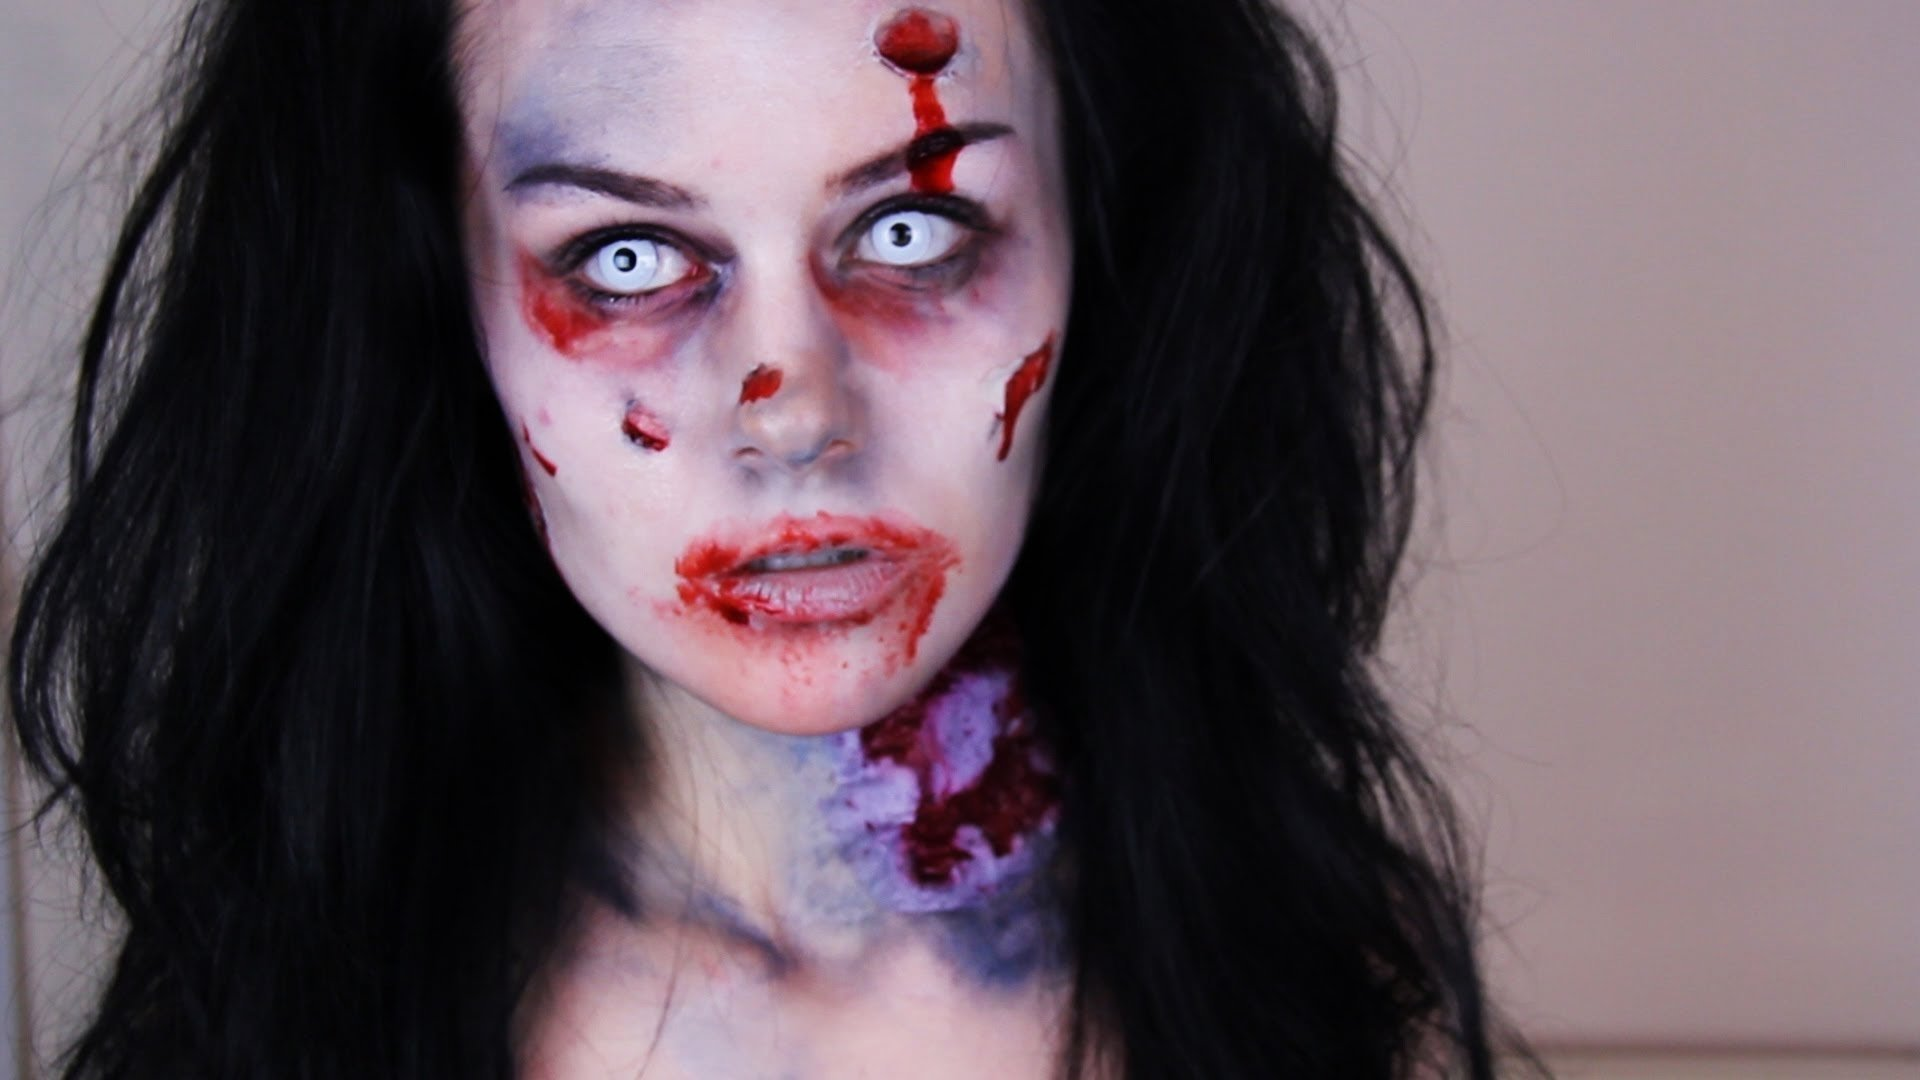 zombie makeup tutorial -- how to do easy zombie makeup - youtube